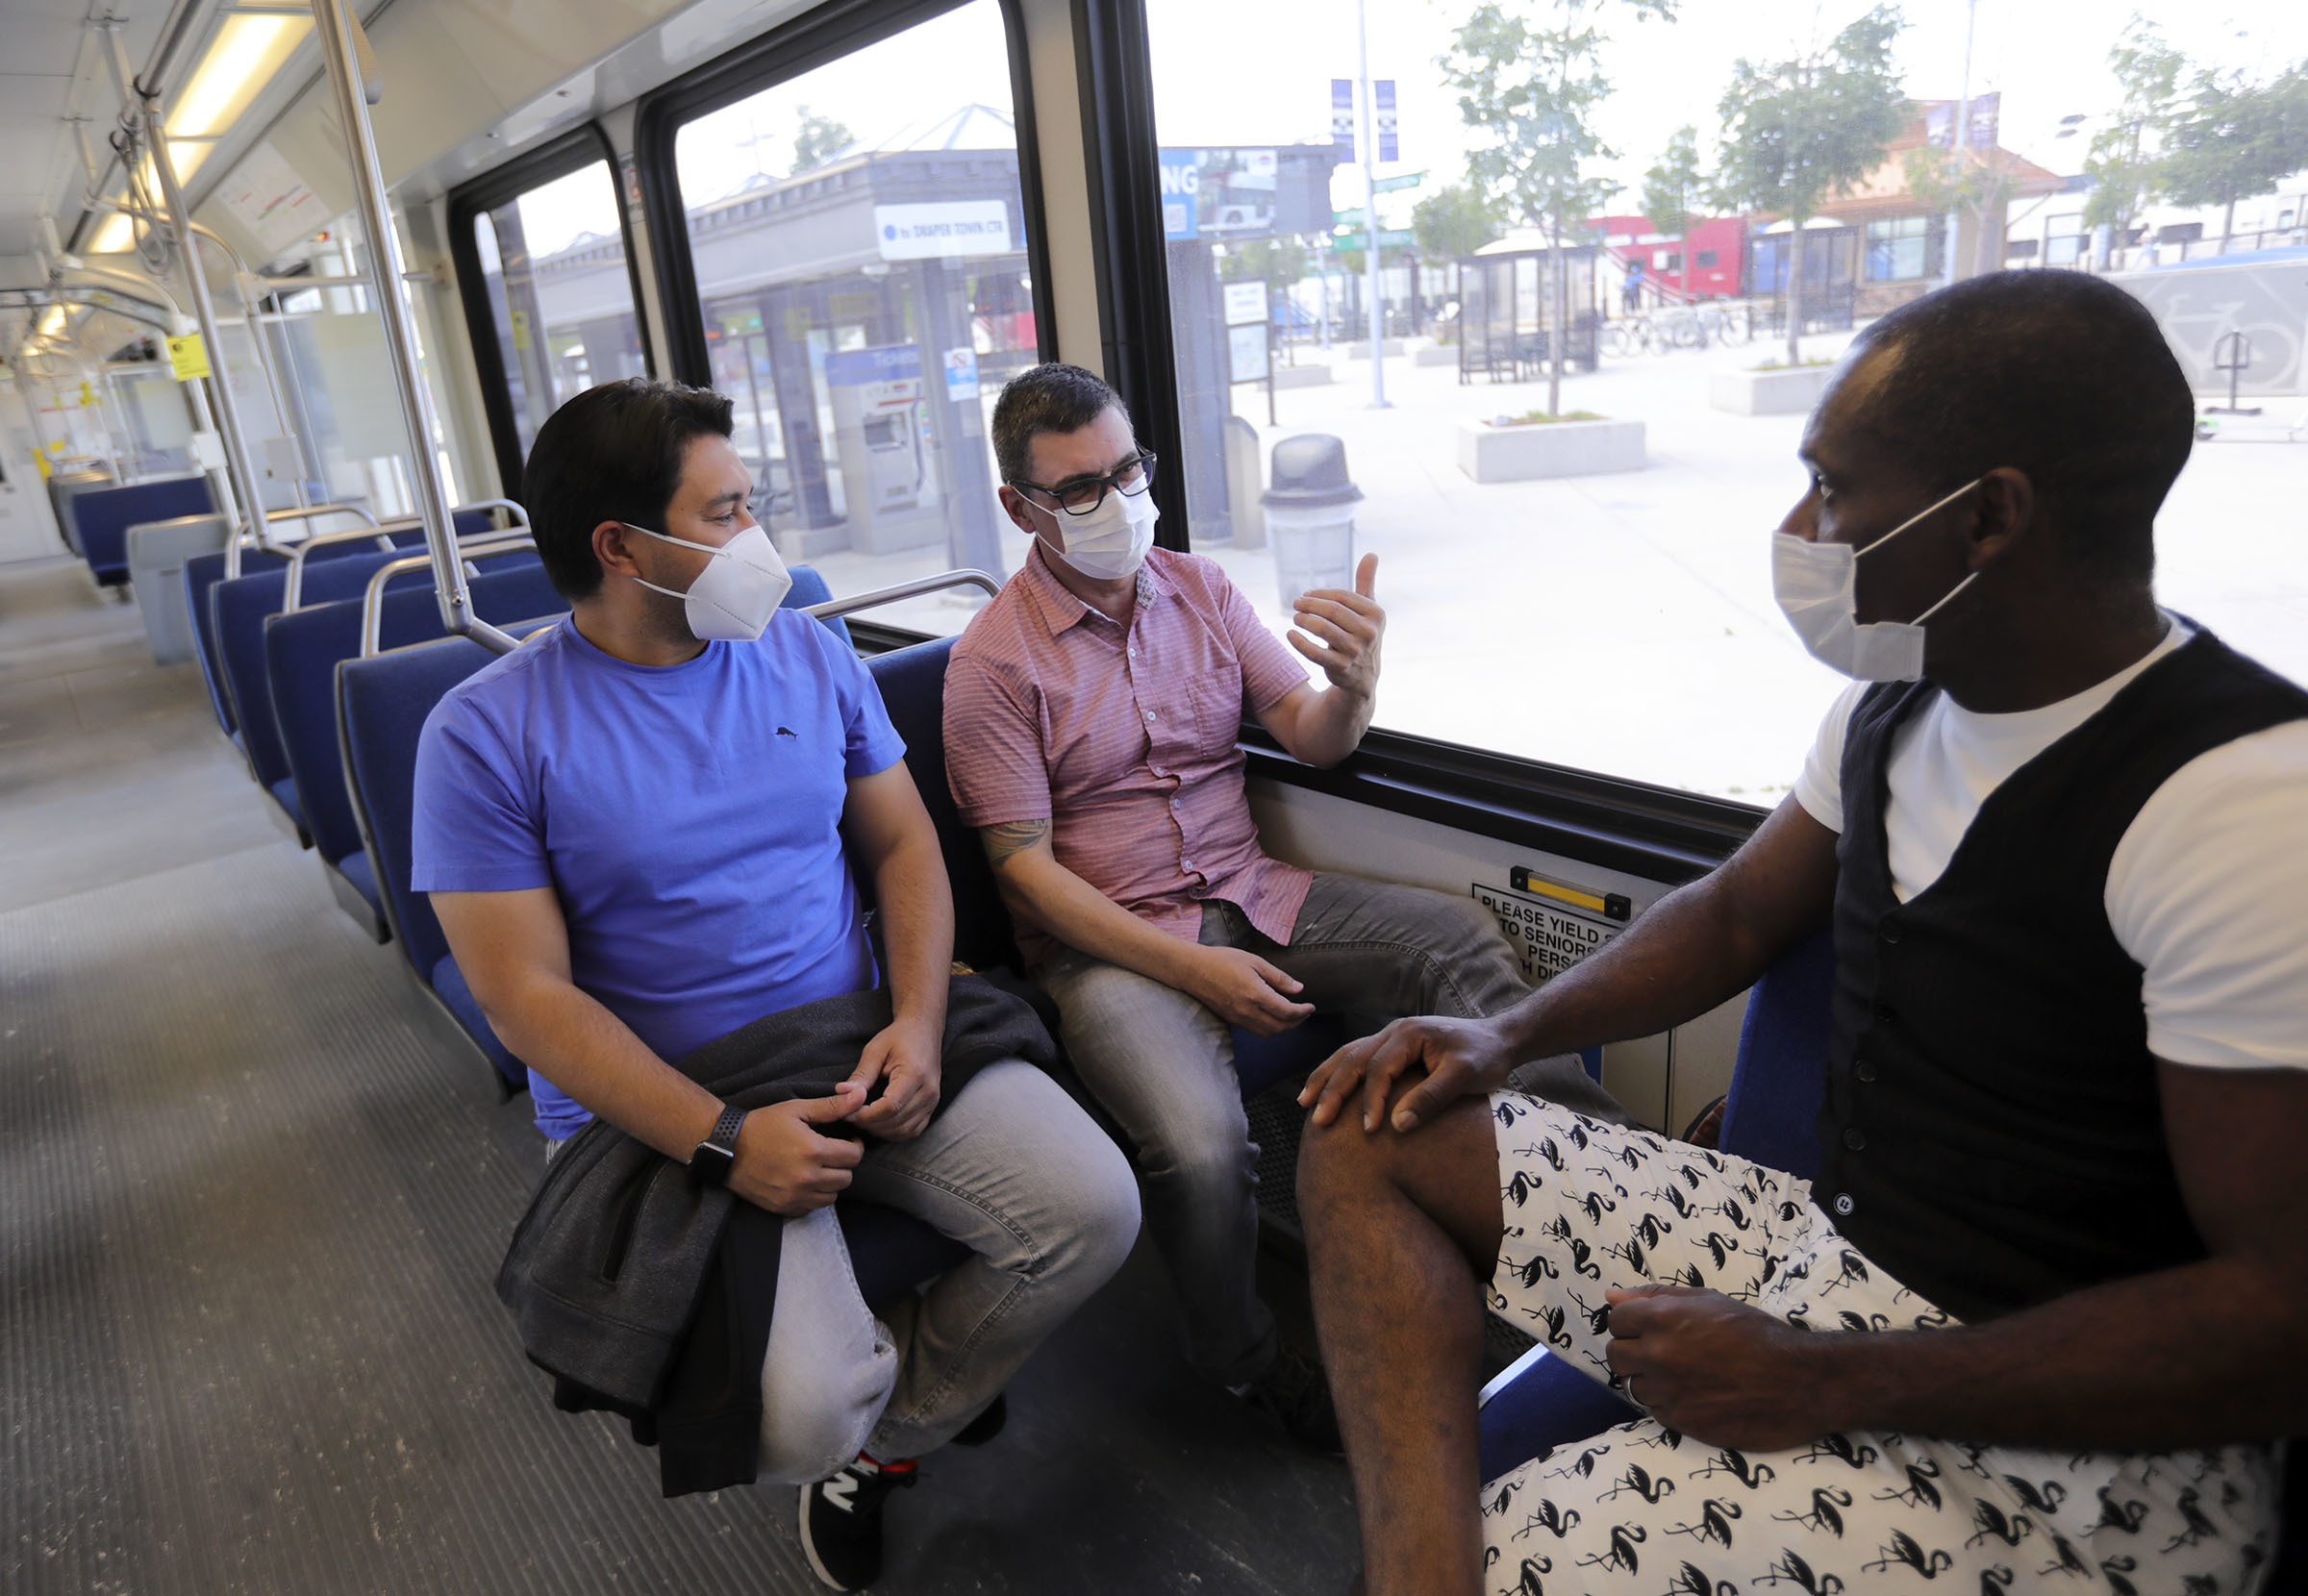 Tiberio Barros,Marcelo Vasconcelos and Gomans Marcus wear masks while waiting for their TRAX train to depart the Salt Lake Central Station in Salt Lake City on Wednesday, July 1, 2020. The Utah Transit Authority now requires face masks be worn in order to ride public transit in compliance with the Salt Lake County health order.